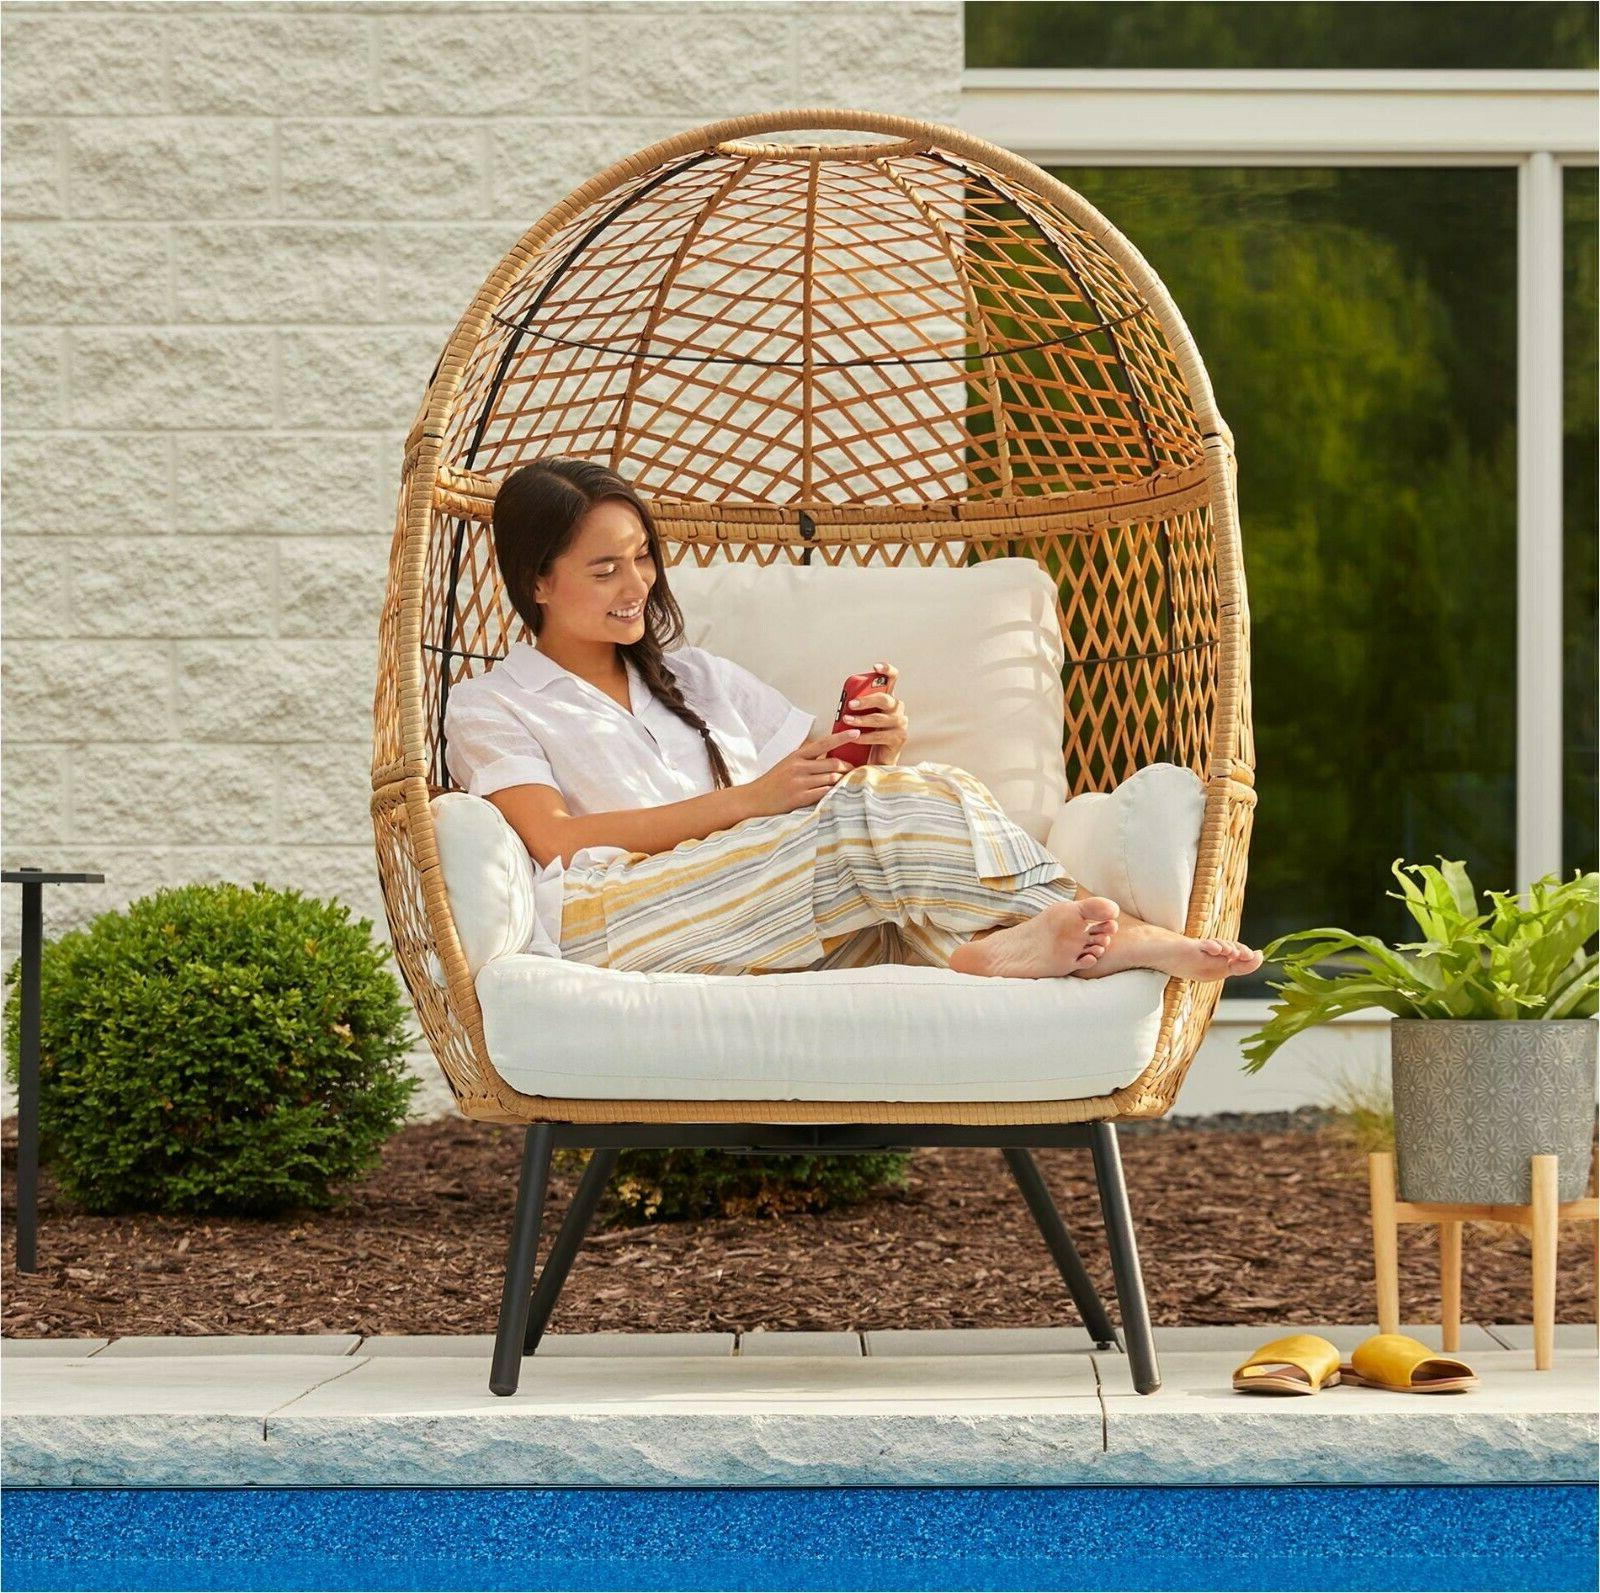 Patio Egg Wicker With Legs Large Chairs